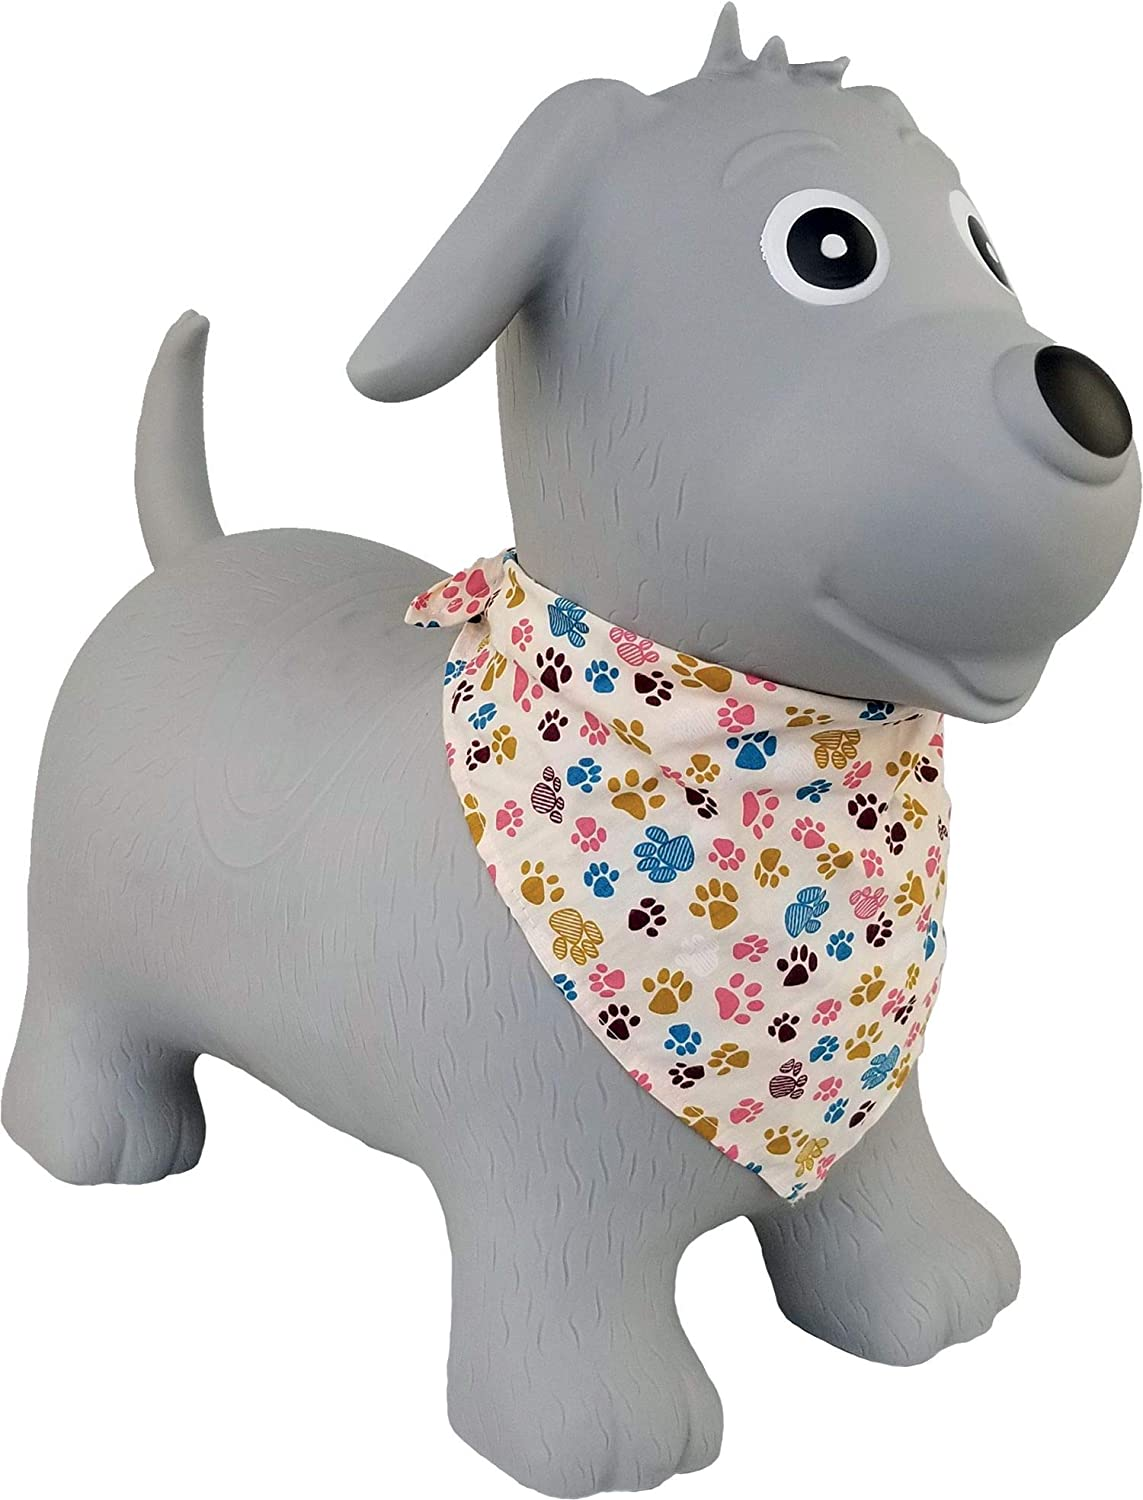 Simply for kids - Bola Skippy Perro Gris para Bebe - 38632: Amazon ...